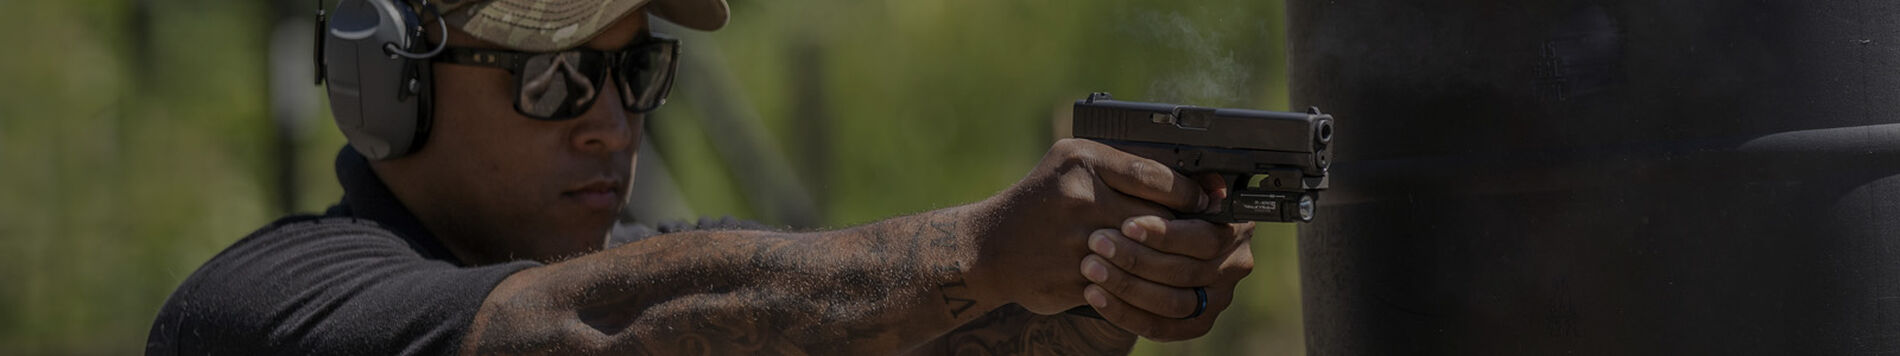 man pointing pistol outside